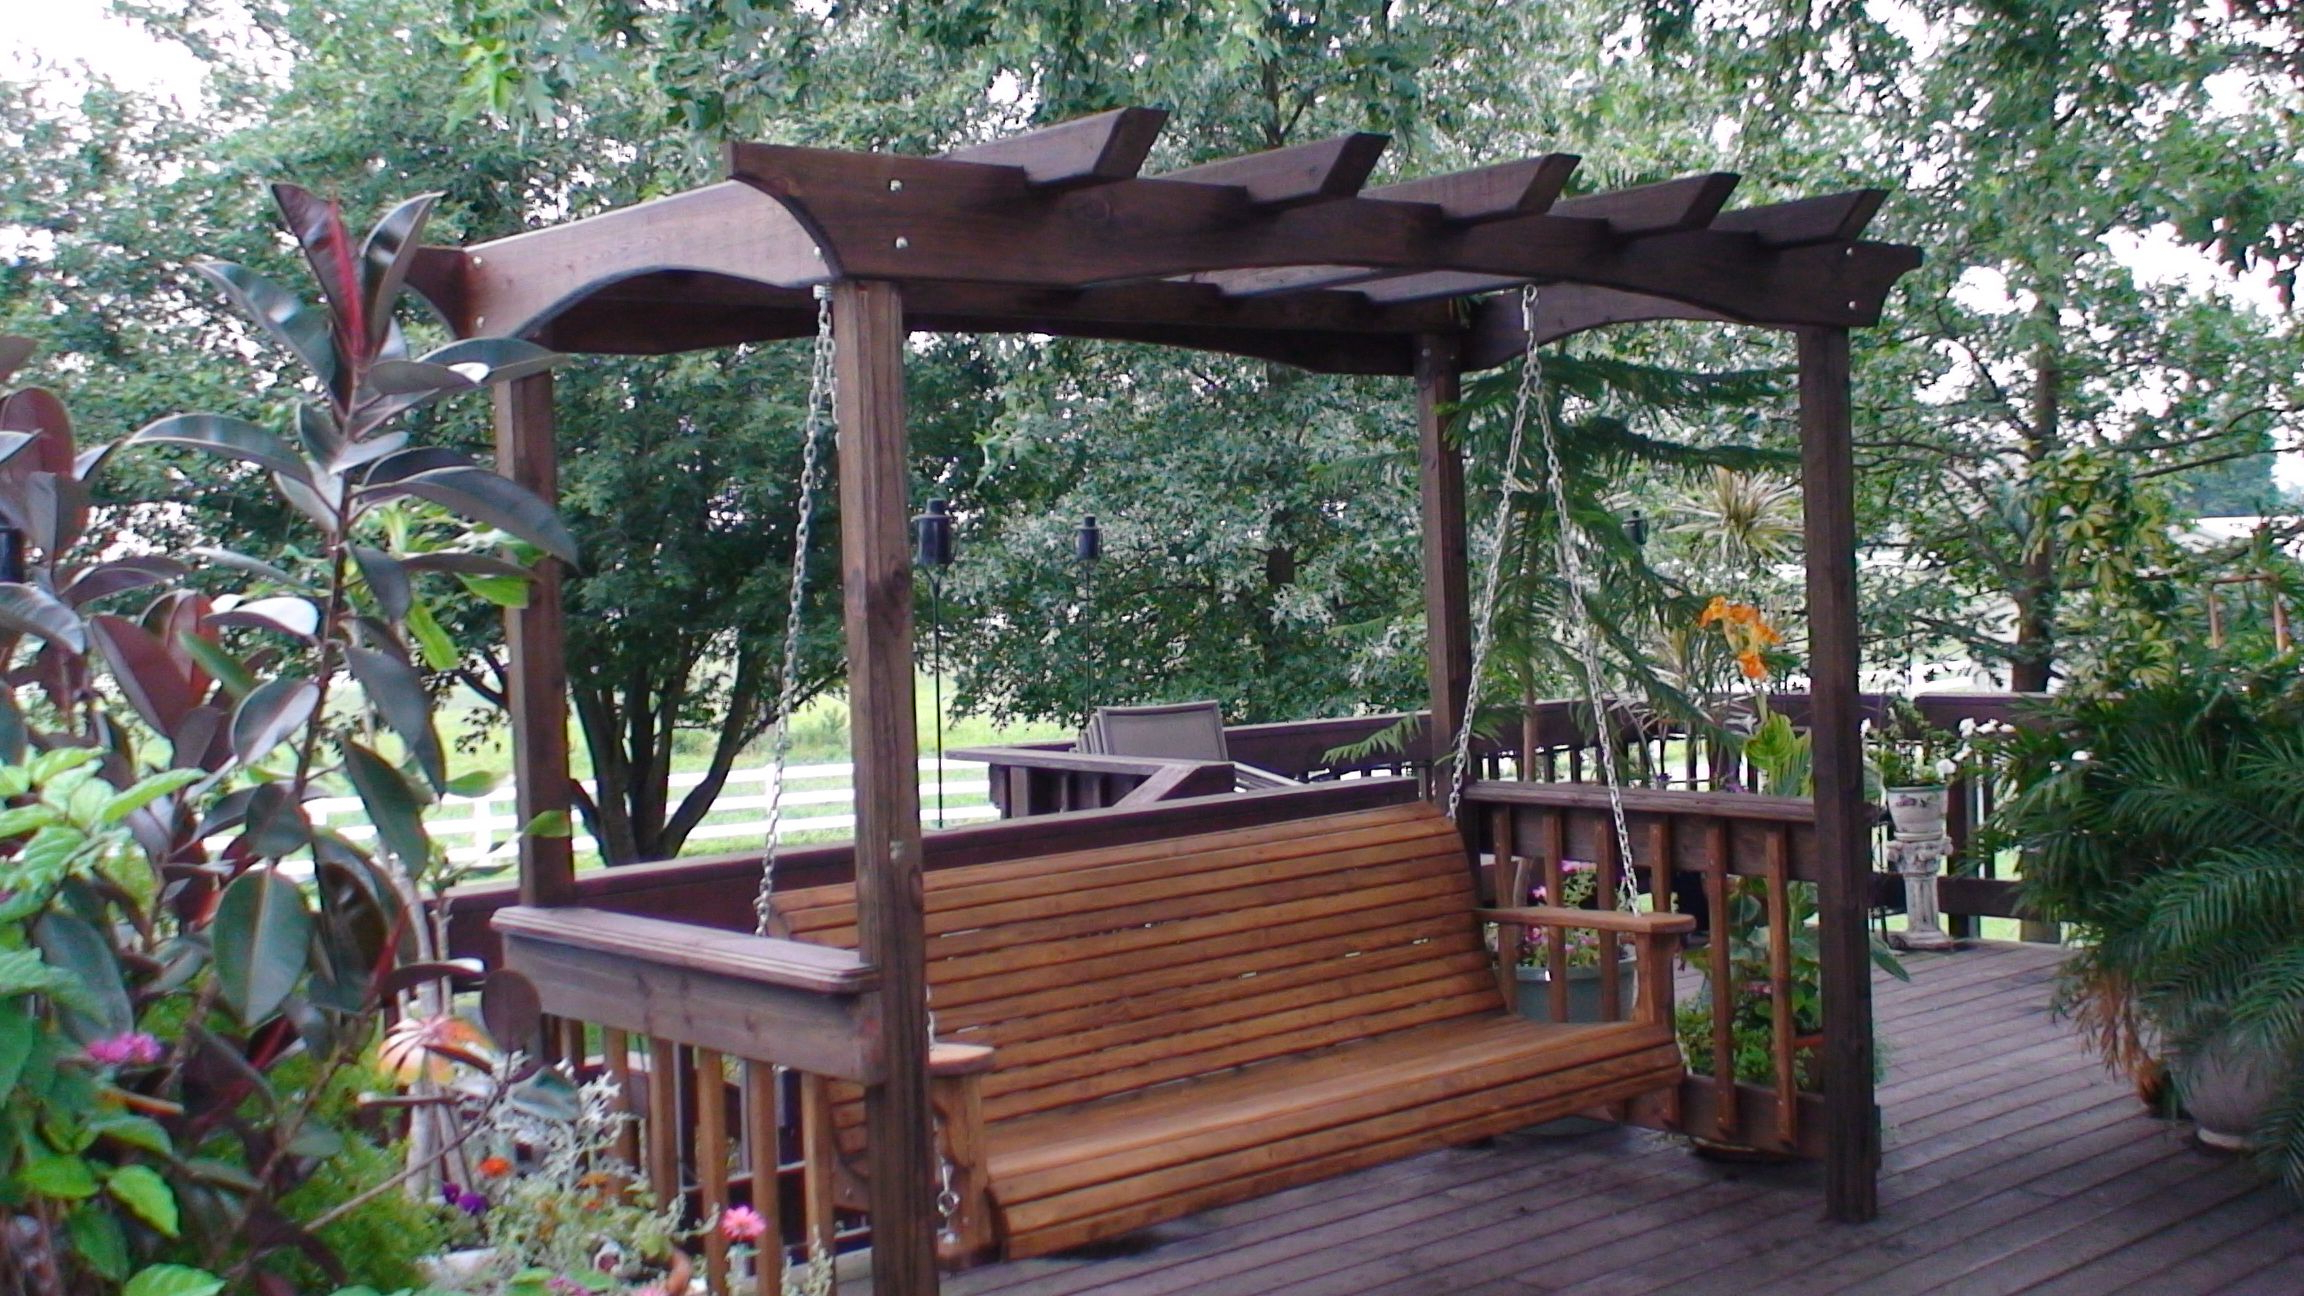 Pergola Porch Swings With Stand For Recent Corrupt Wooden Porch Swings And Porch Swing Stands (View 5 of 30)